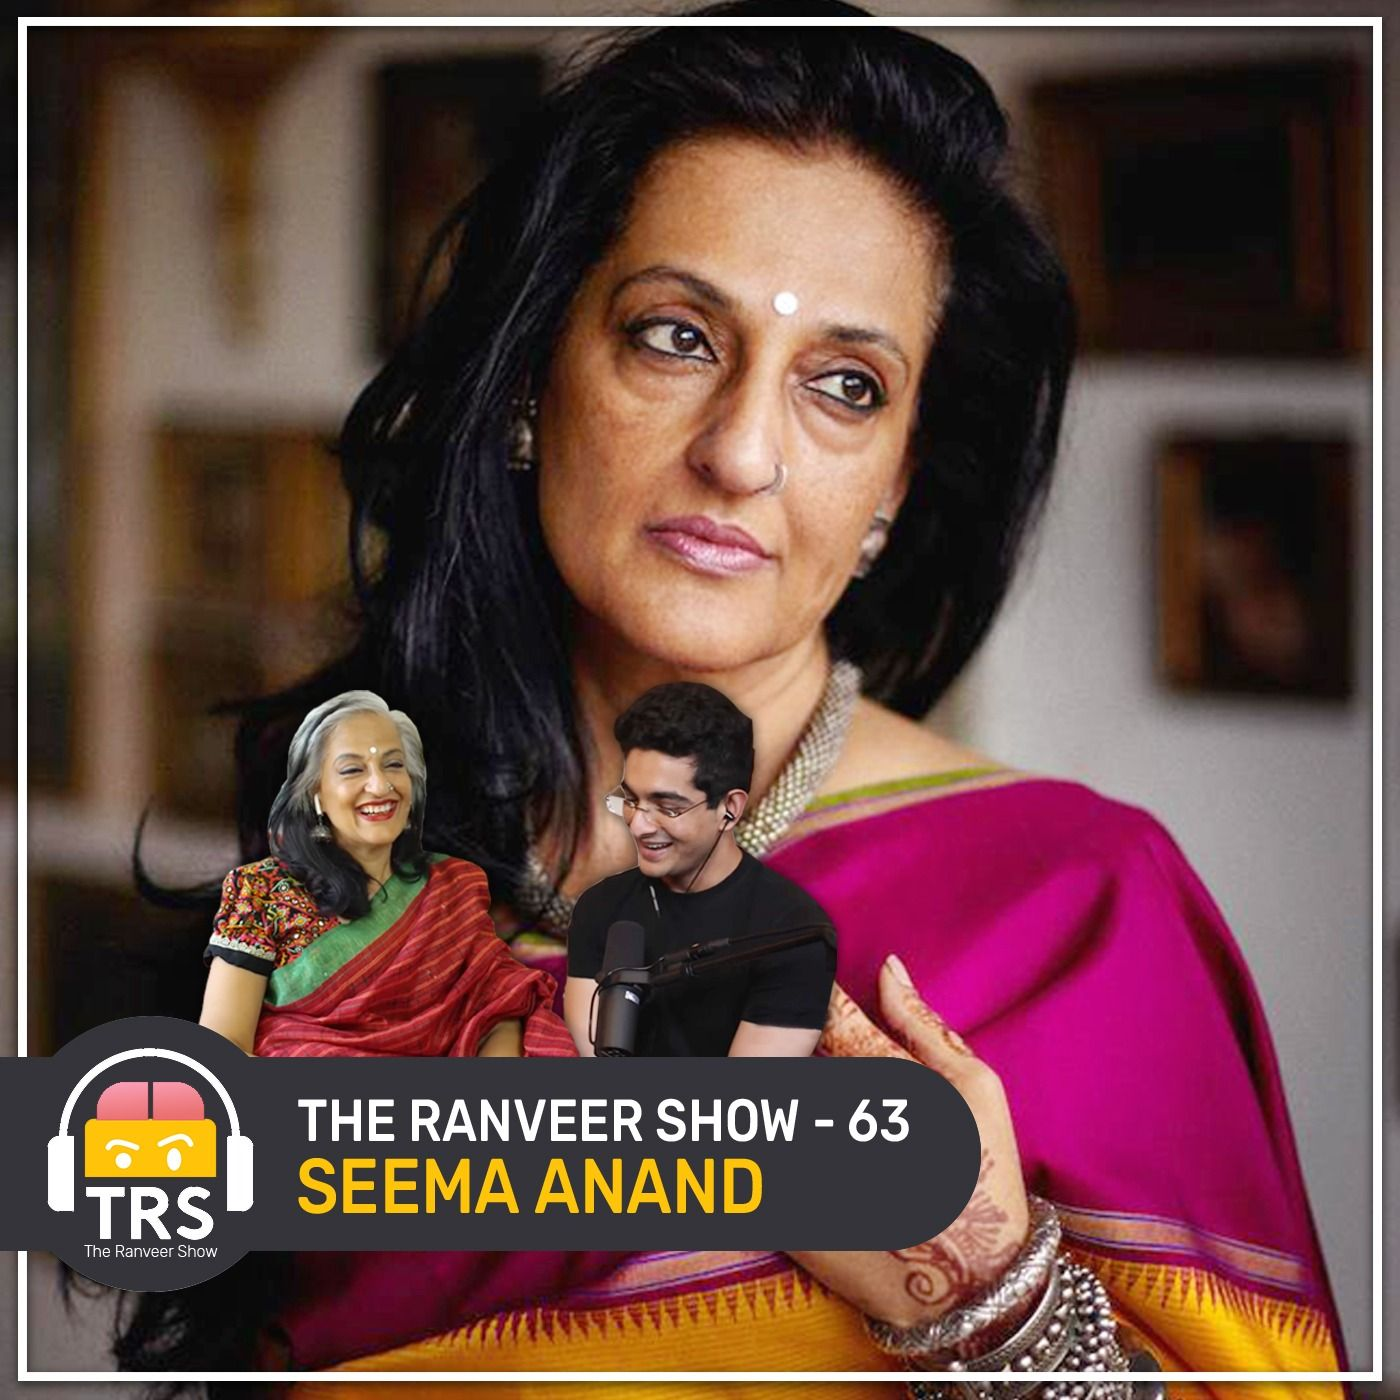 Kamasutra, Sex & Romance Secrets with Seema Anand | The Ranveer Show 63